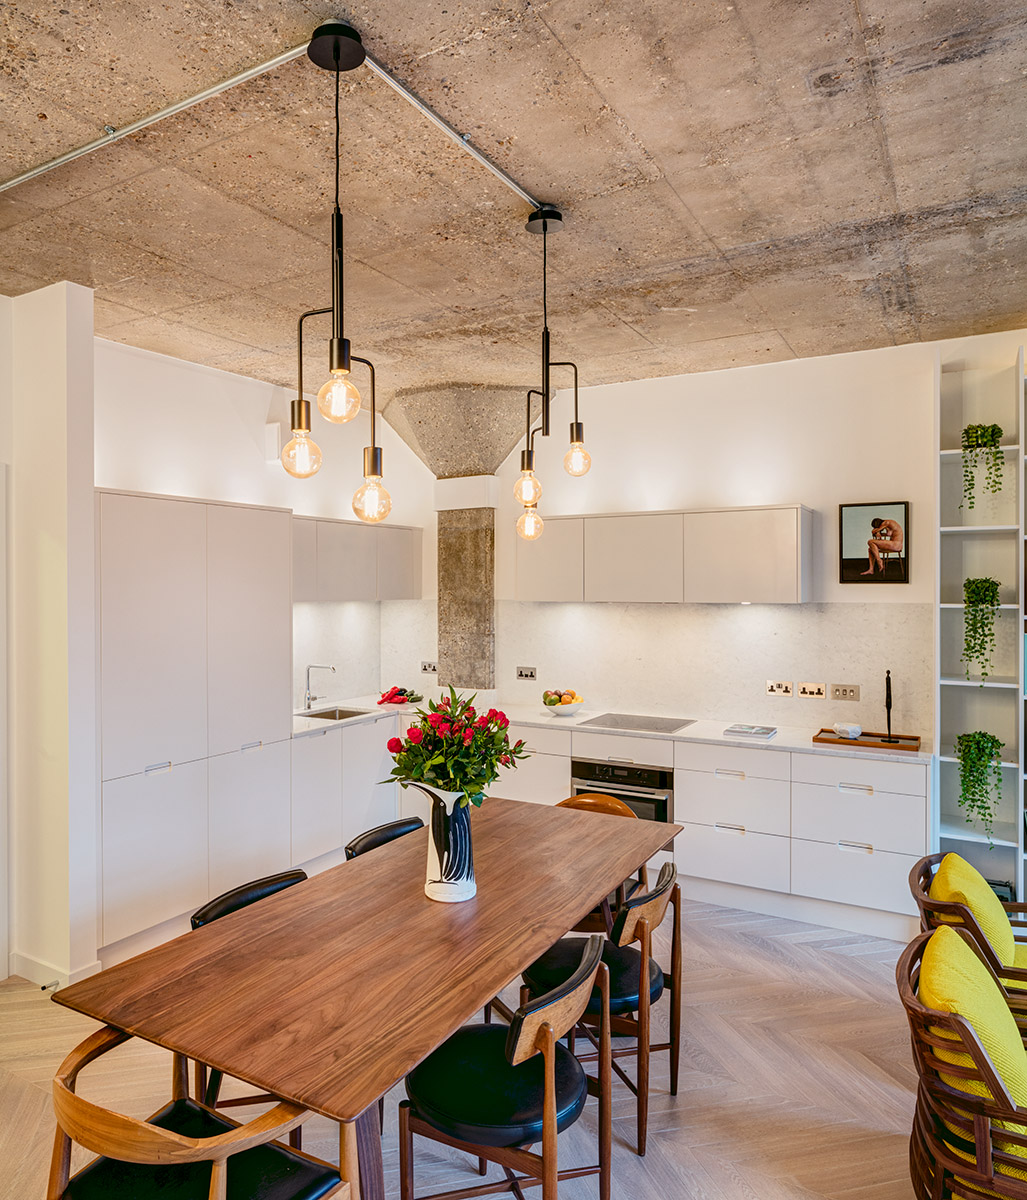 Kitchen area with concrete walls and large wooden table in furnished loft apartment of complete internal redesign project of former warehouse building in Shoreditch. Interior Designer - Warret Julien